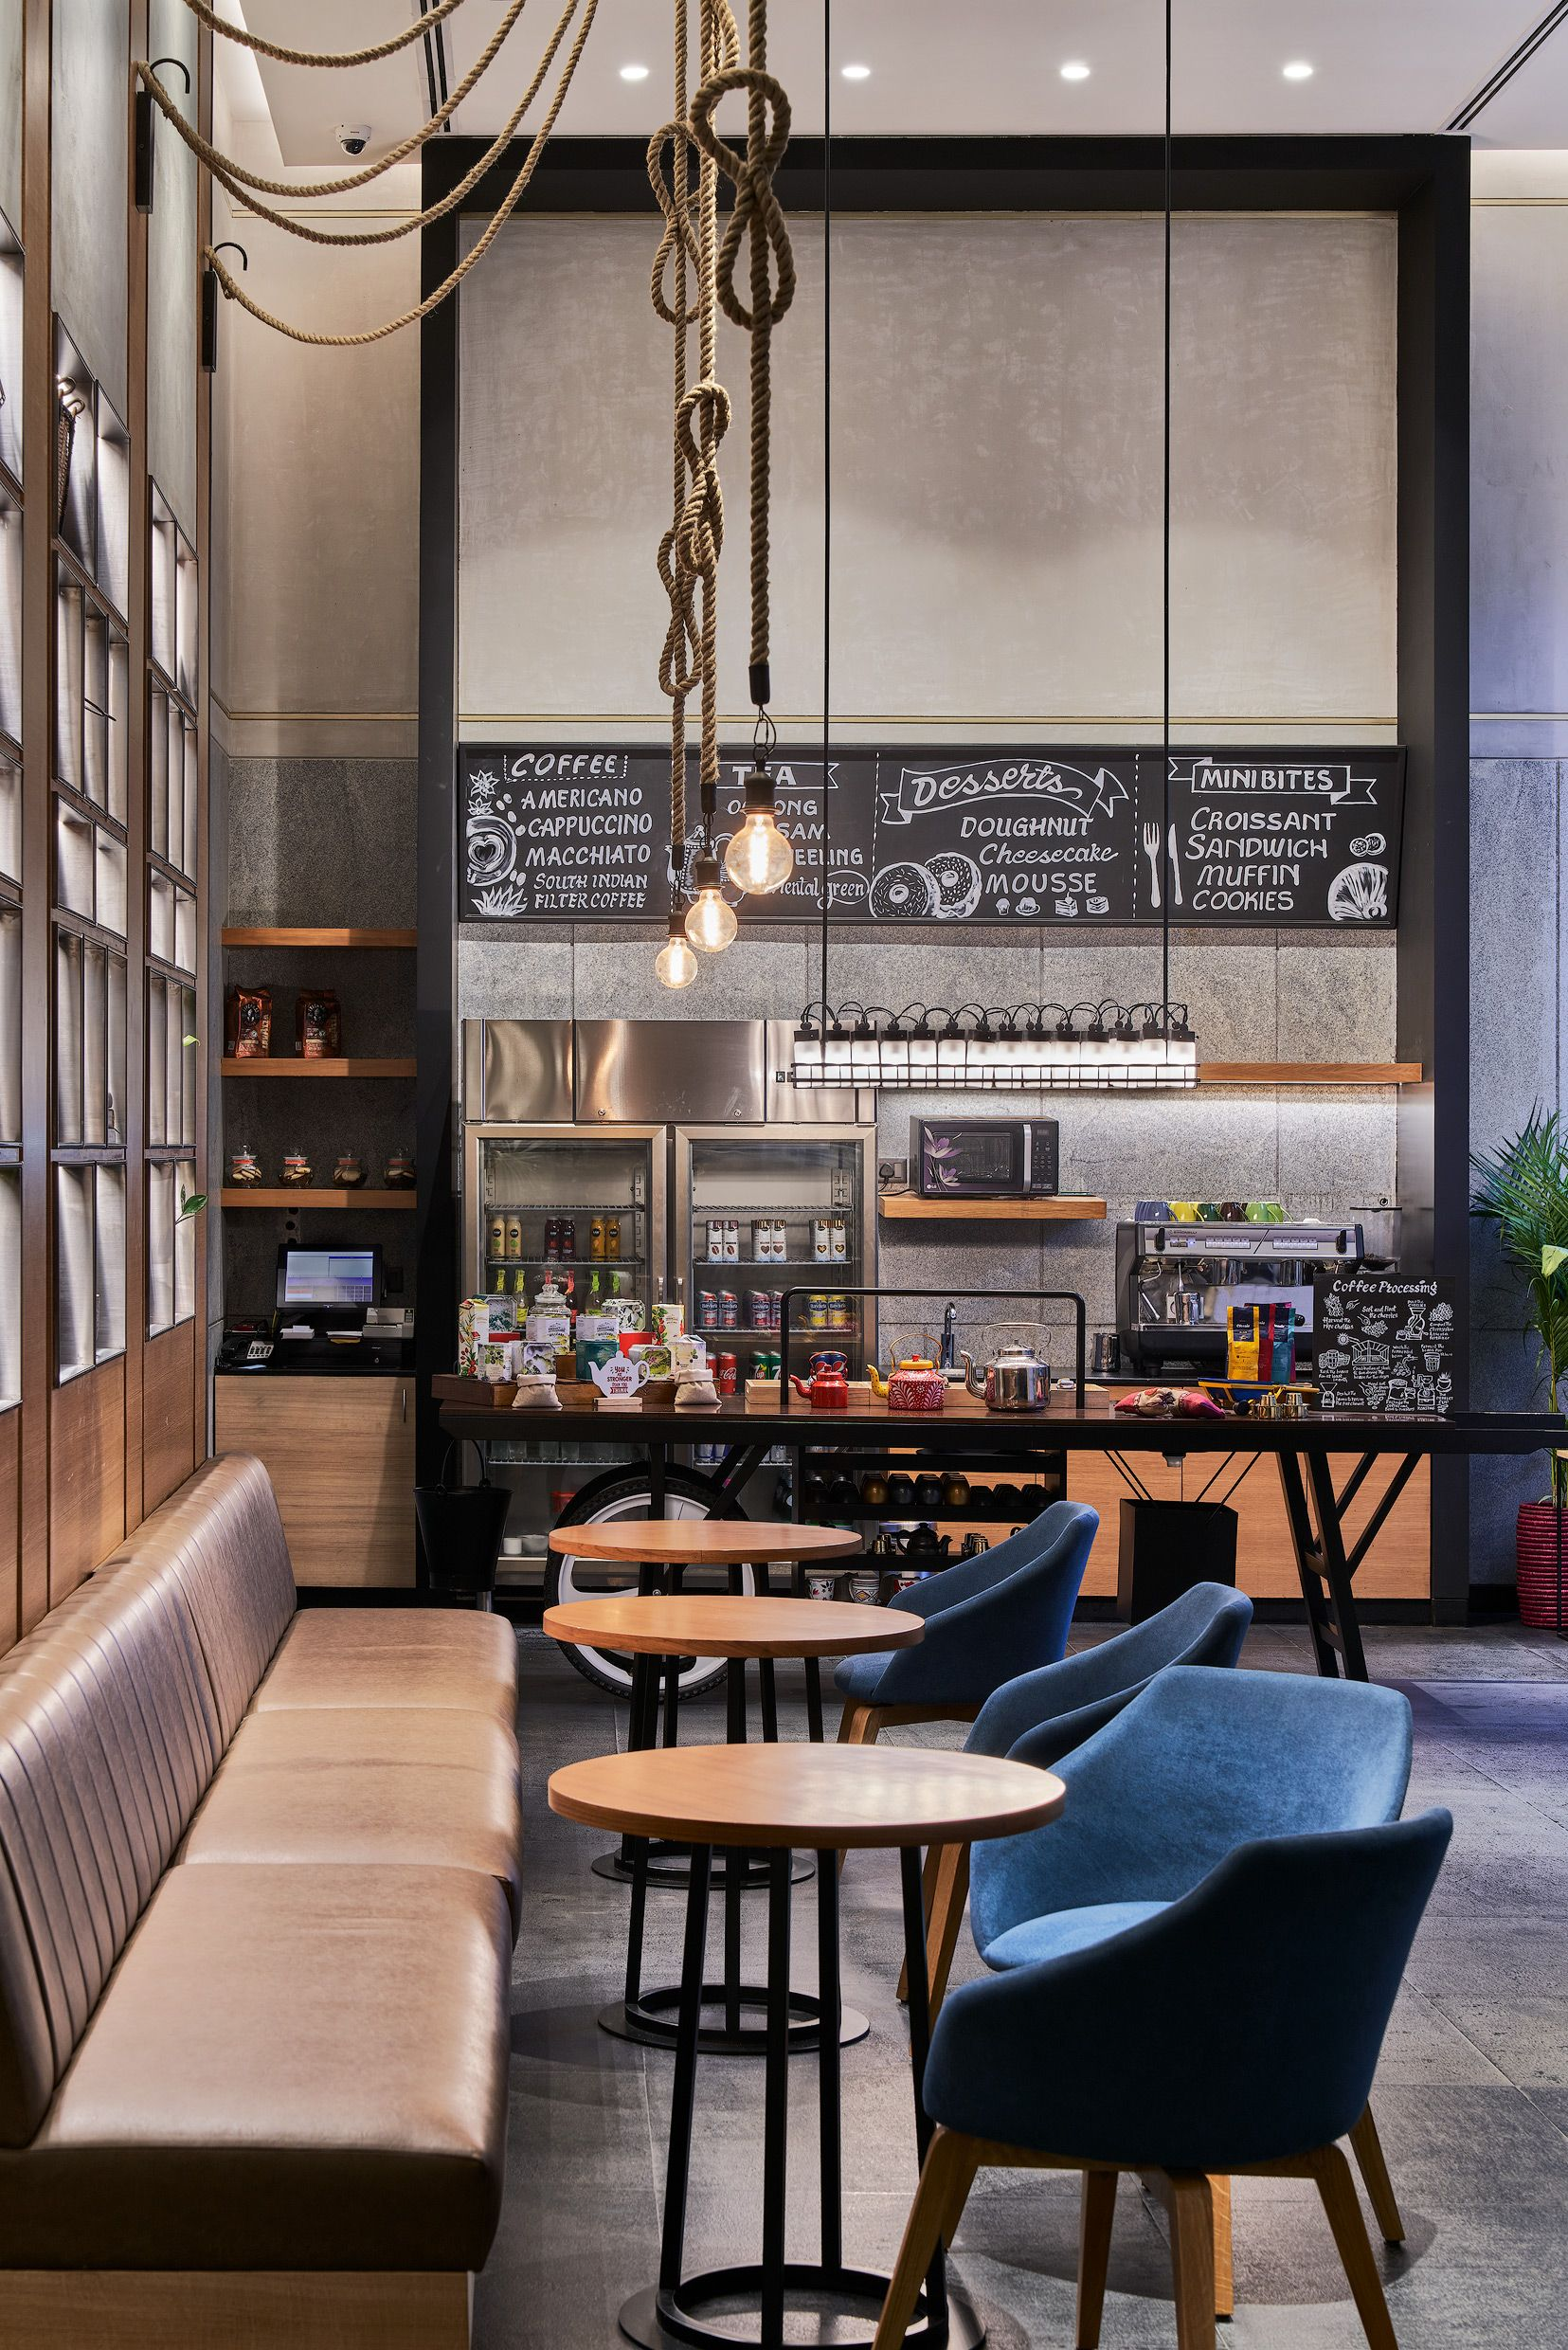 Hyatt Centric Bangalore By Studio Hba With Images Bar